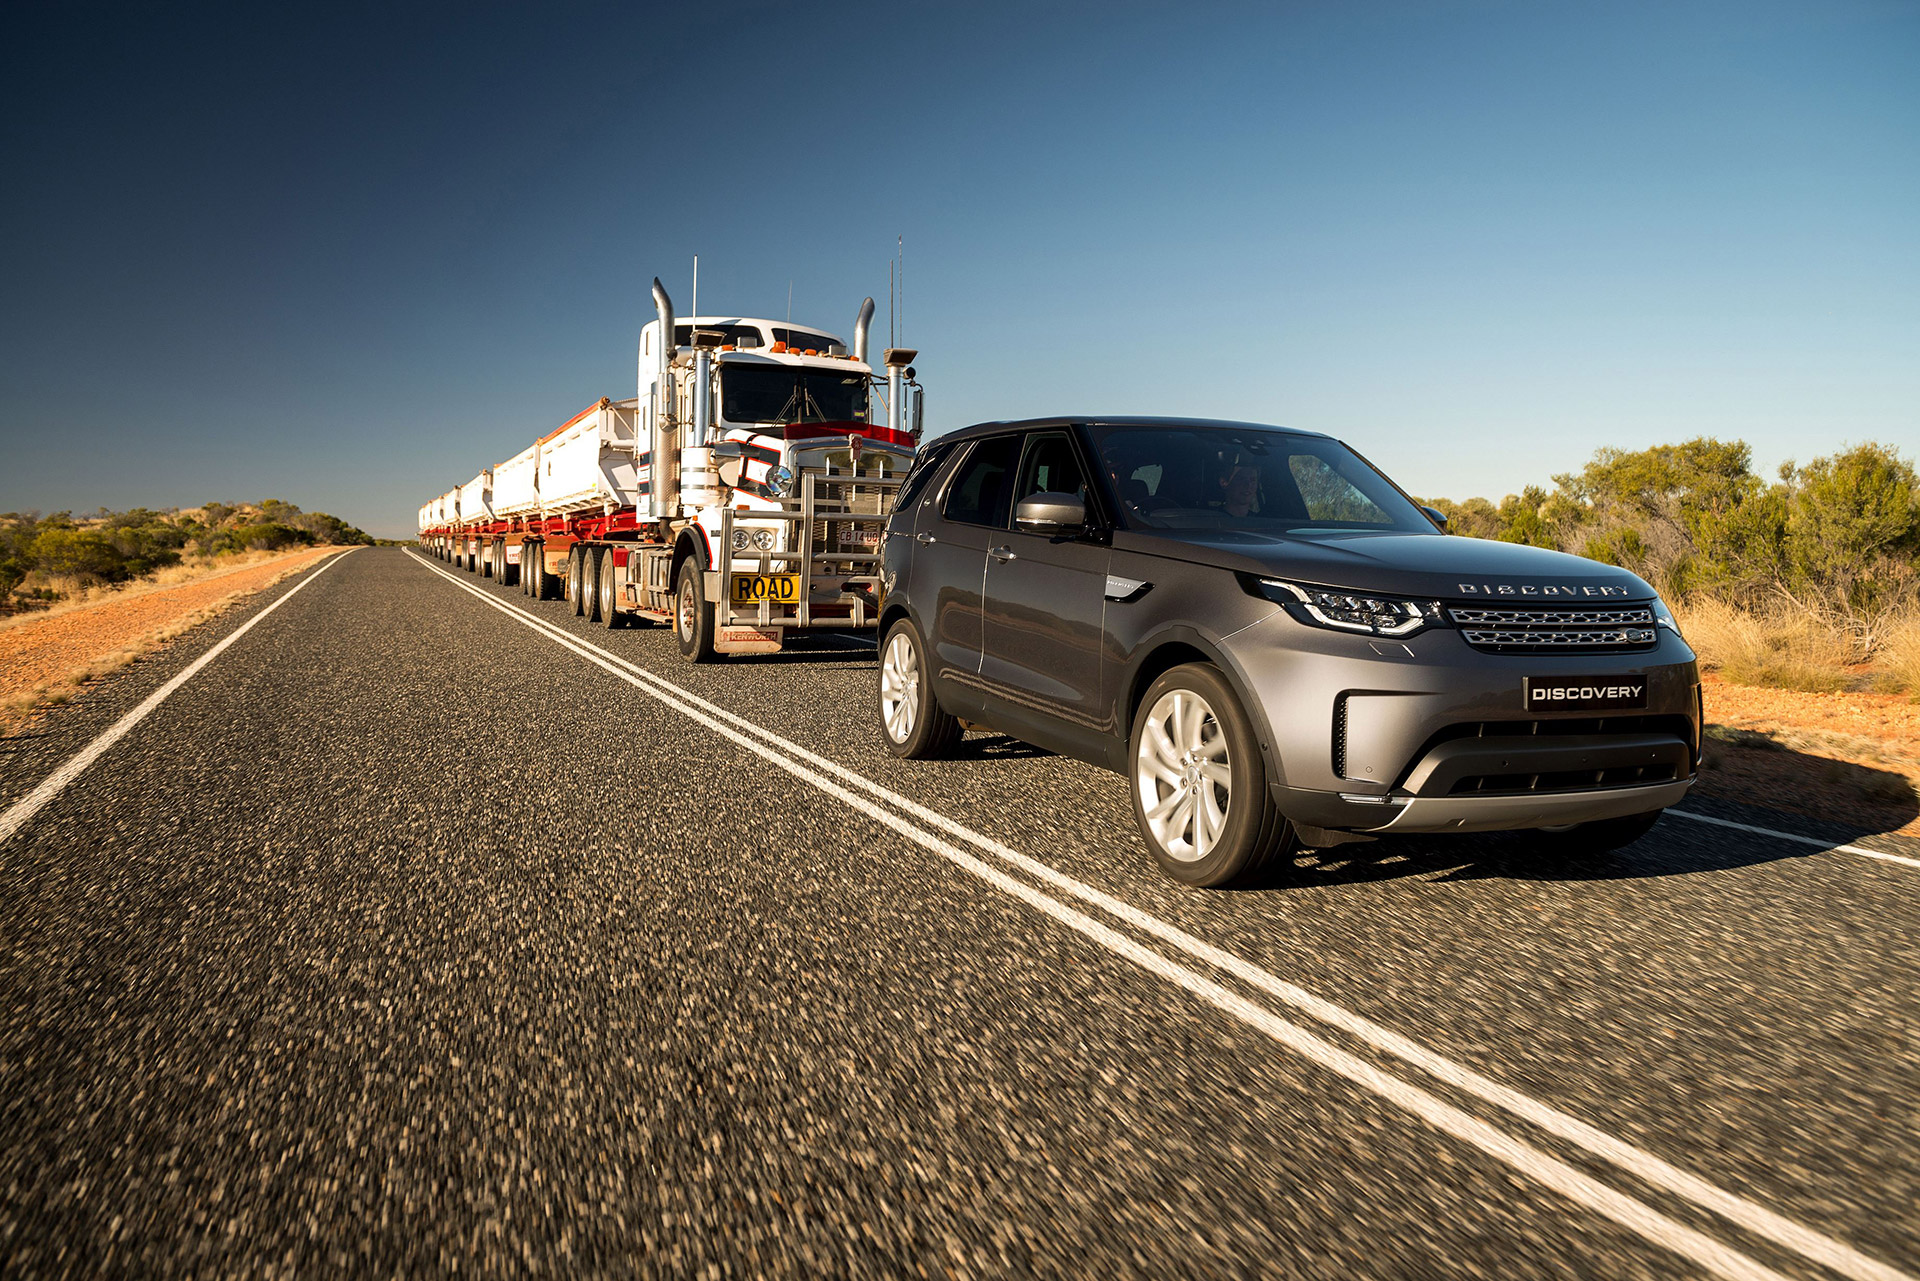 LAND ROVER DISCOVERY TOWS 110 TONNE ROAD TRAIN ACROSS AUSTRALIAN